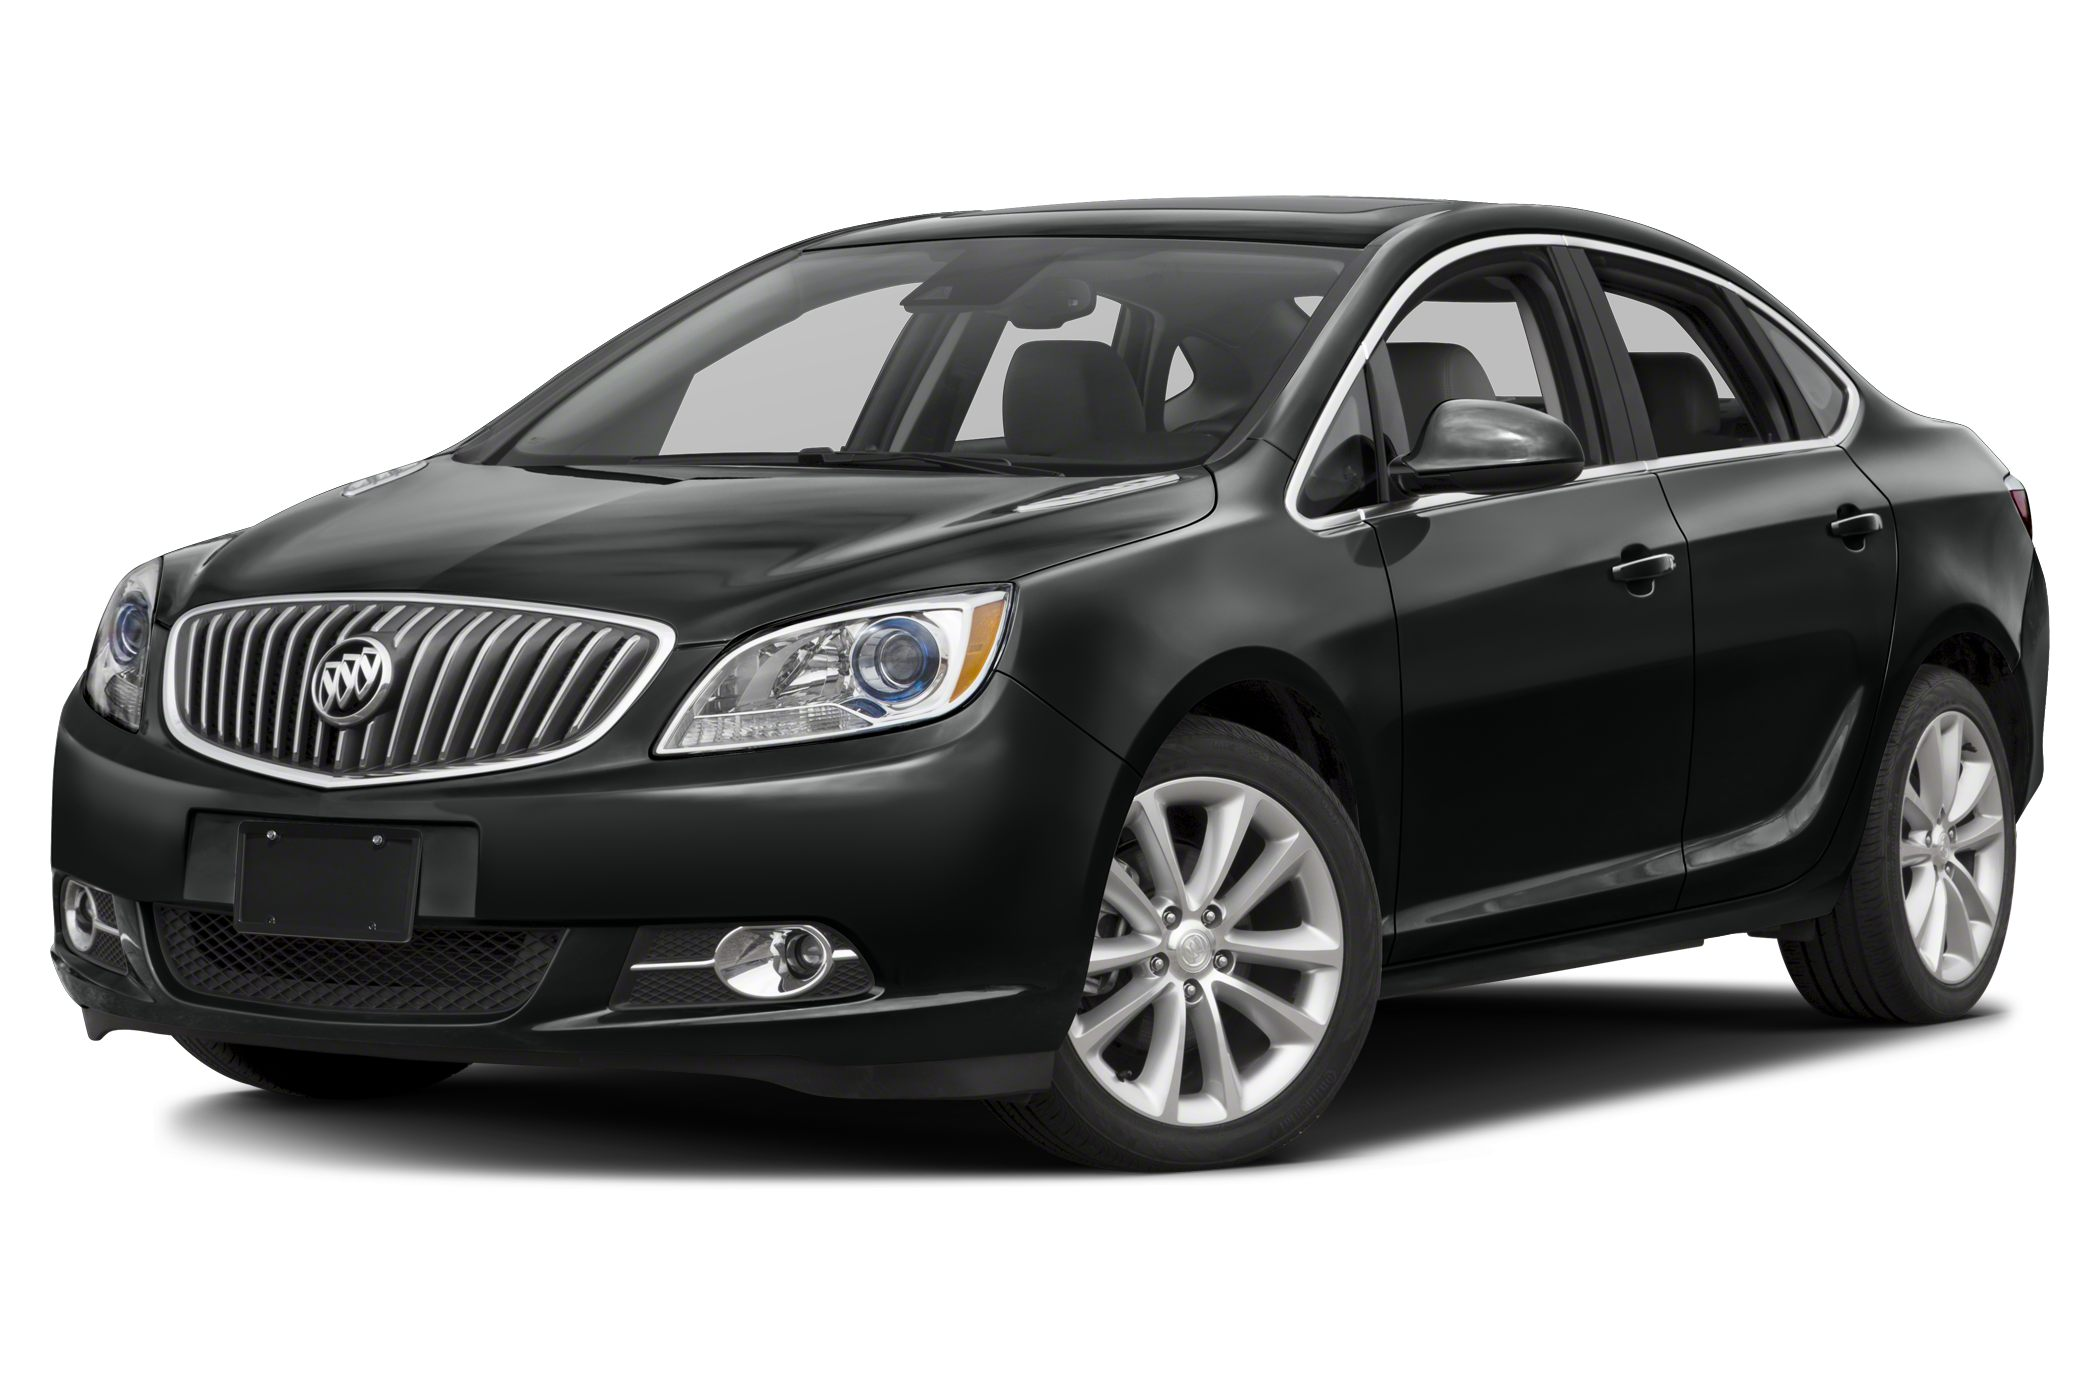 2017 buick verano leather group for sale vin 1g4ps5sk1h